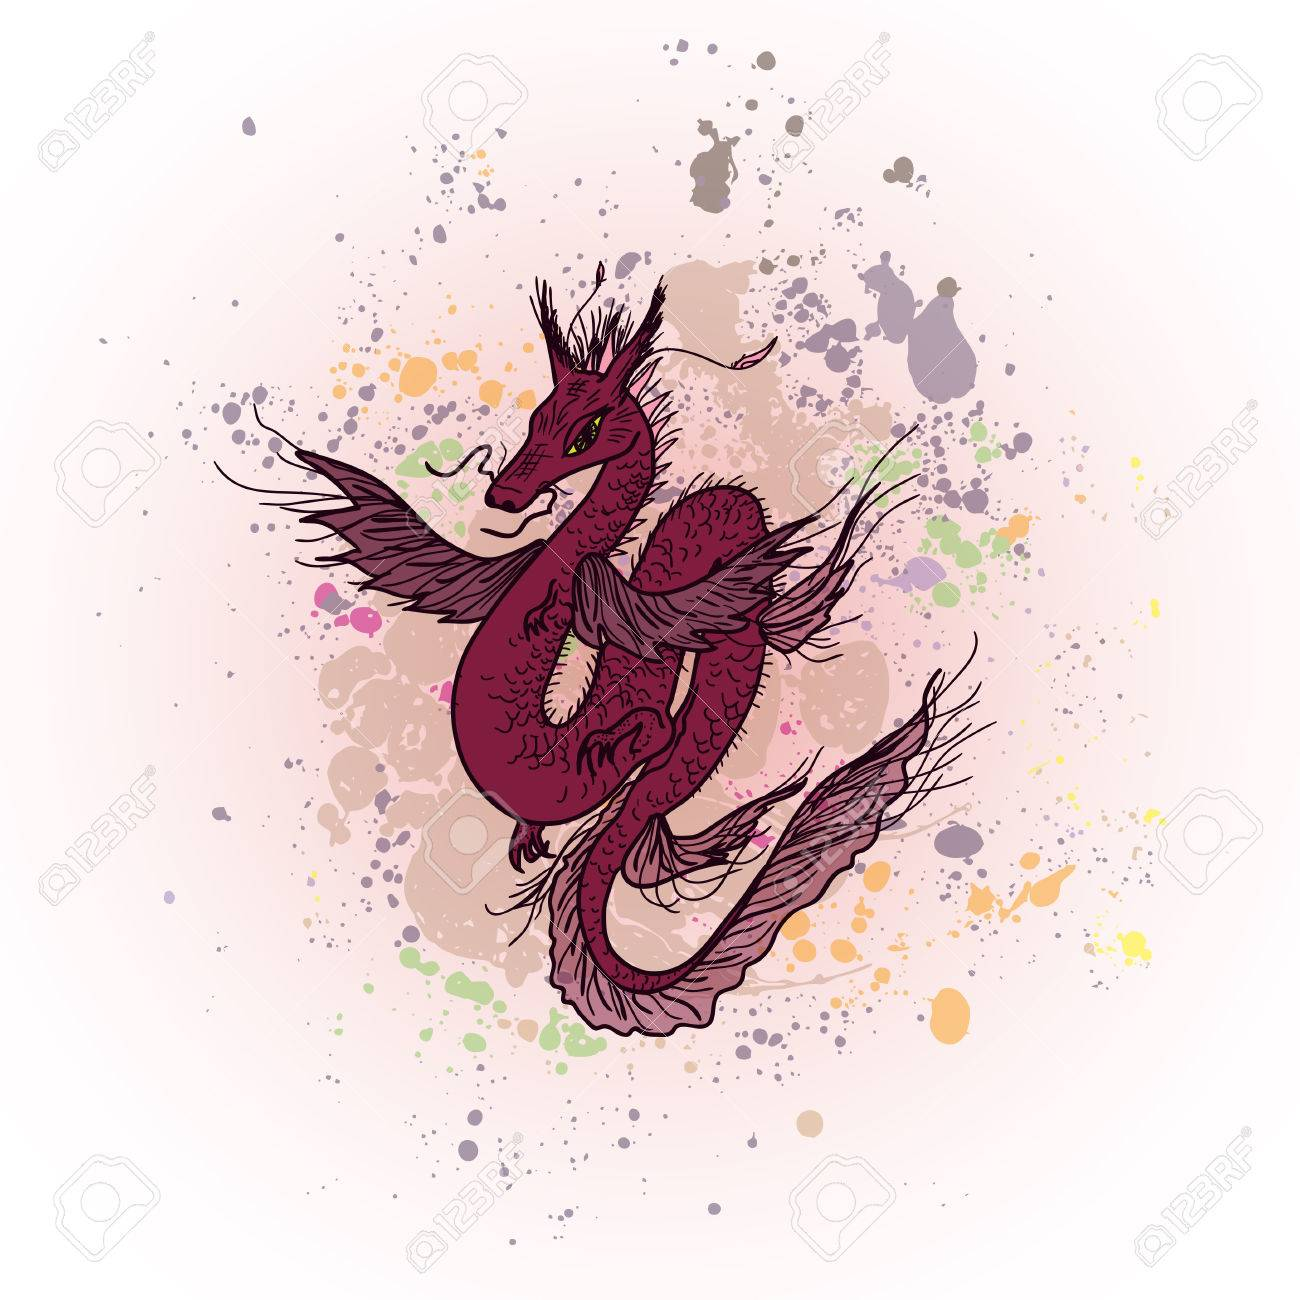 Top Wallpaper Abstract Dragon - 53763616-magic-fly-dragon-on-abstract-ink-background-chinese-dragon-background-for-t-shirt-design-of-textile-  HD_8575 .jpg